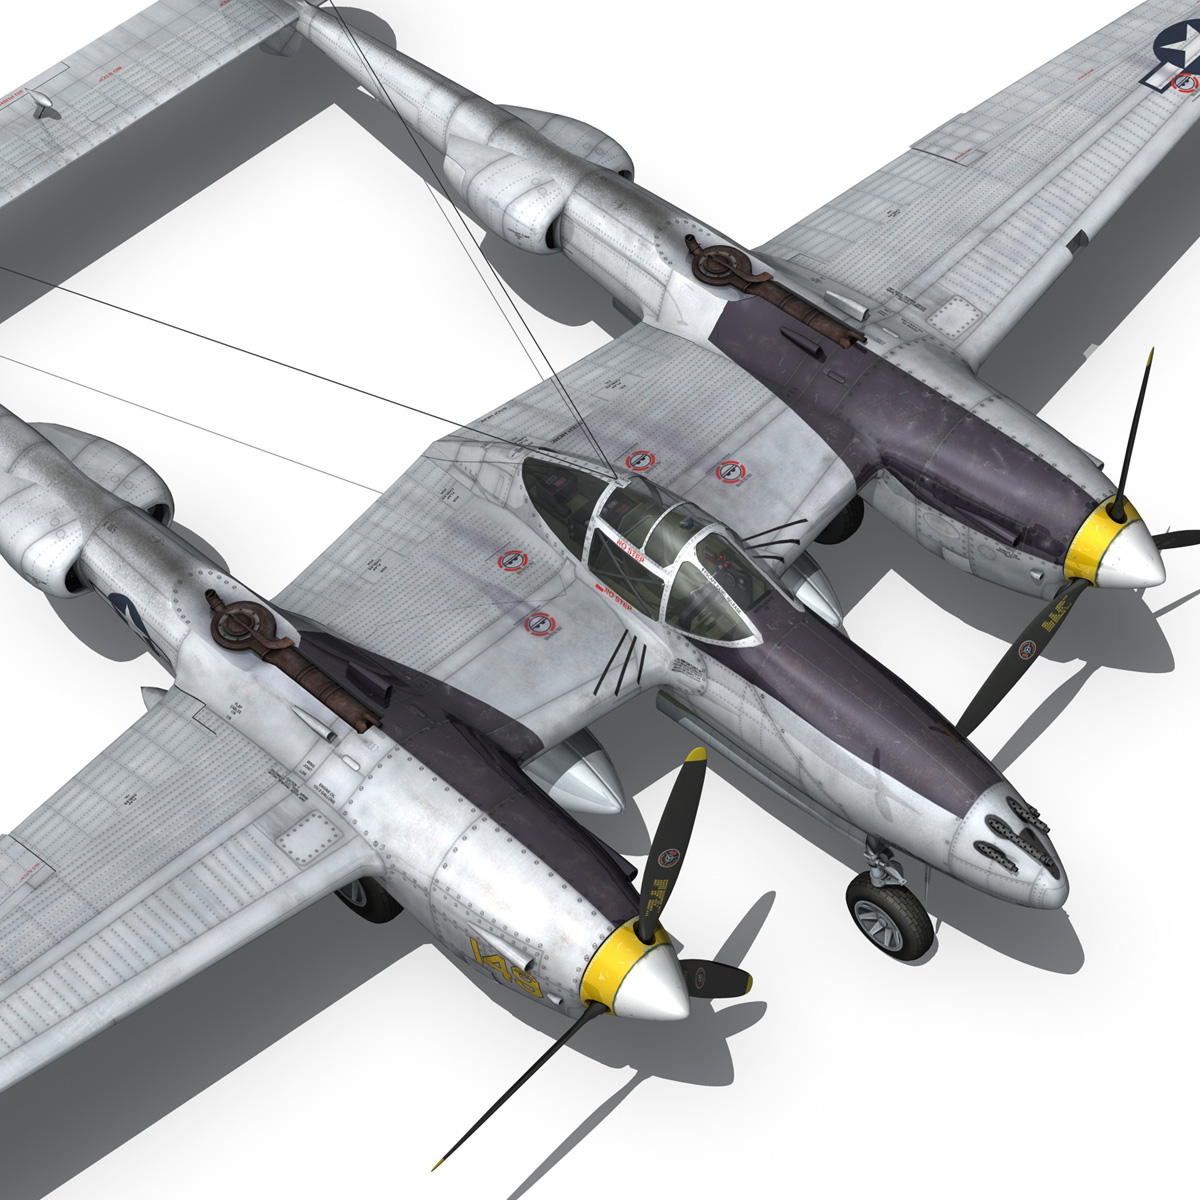 lockheed p-38 lightning – florida cracker 3d model fbx c4d lwo obj 279428